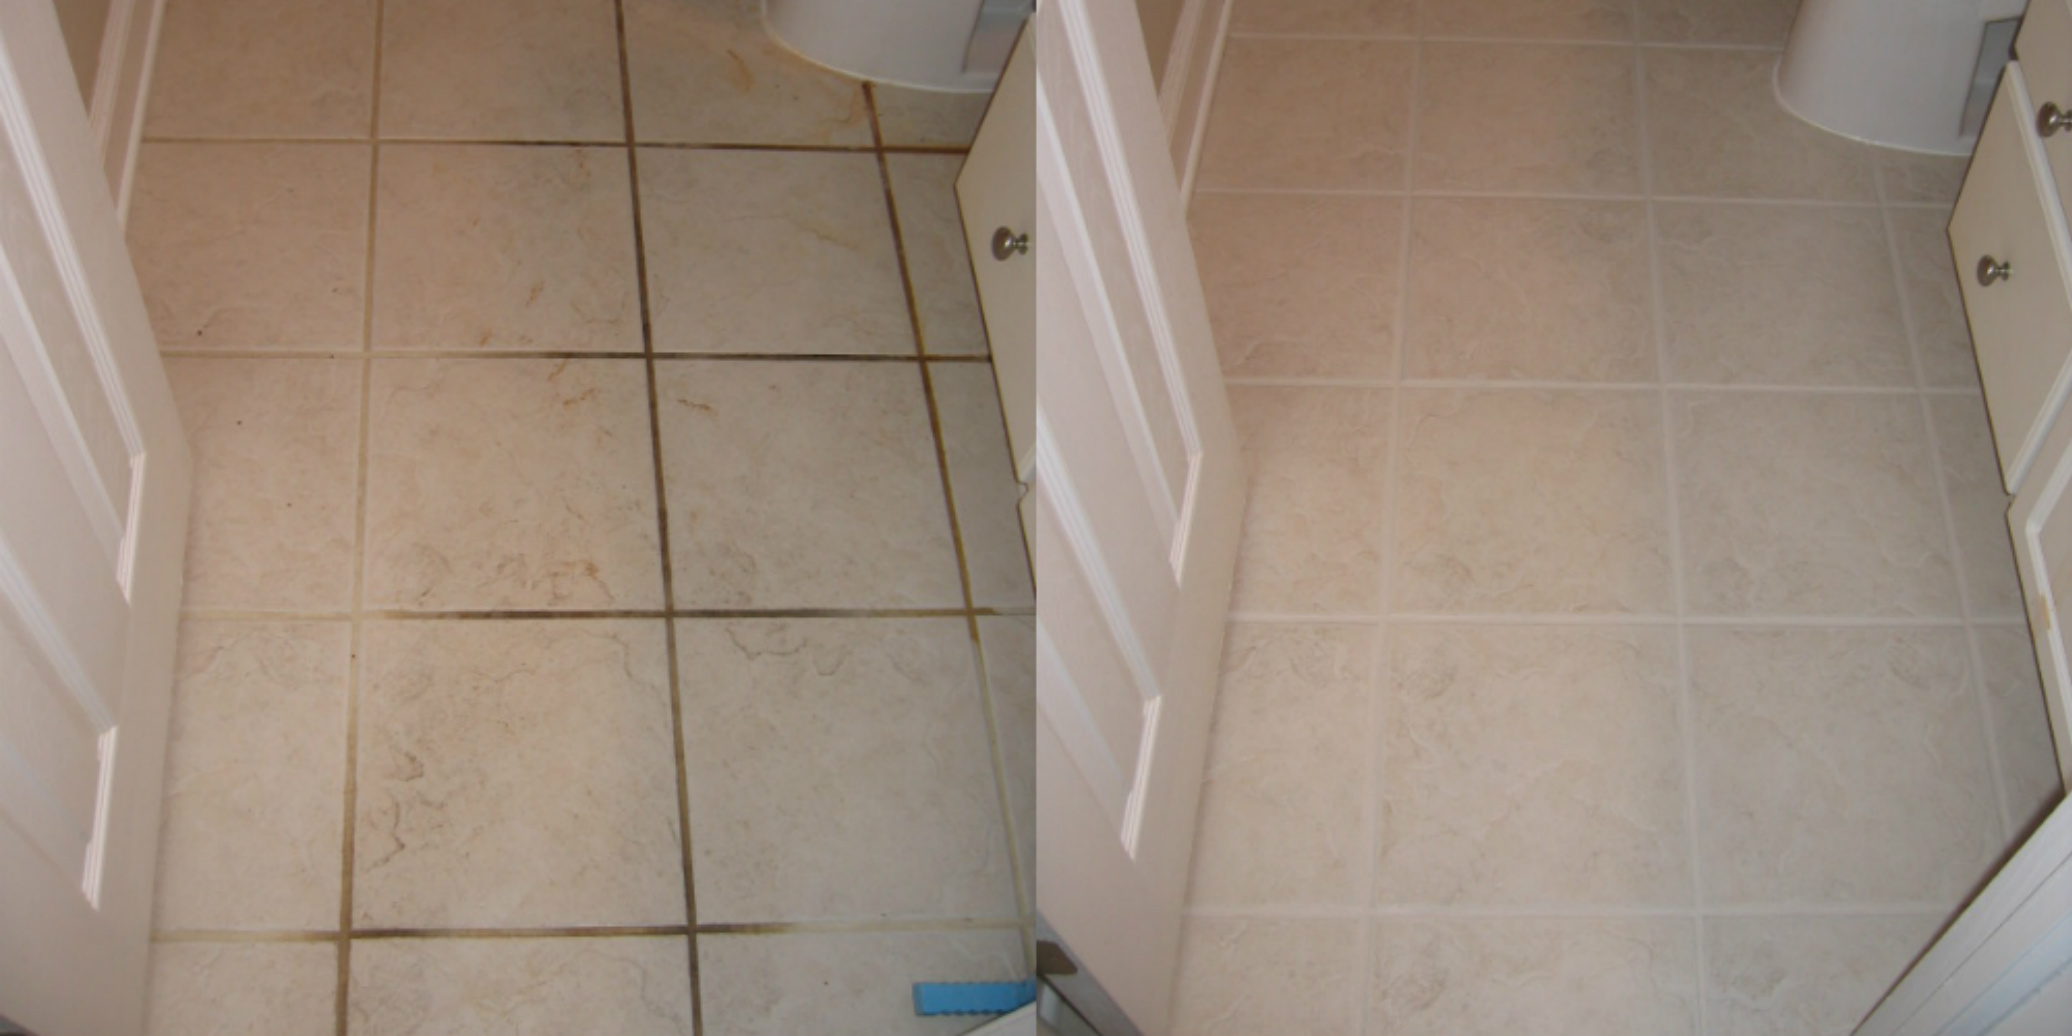 Tile and Grout Cleaning Services Durham Lead